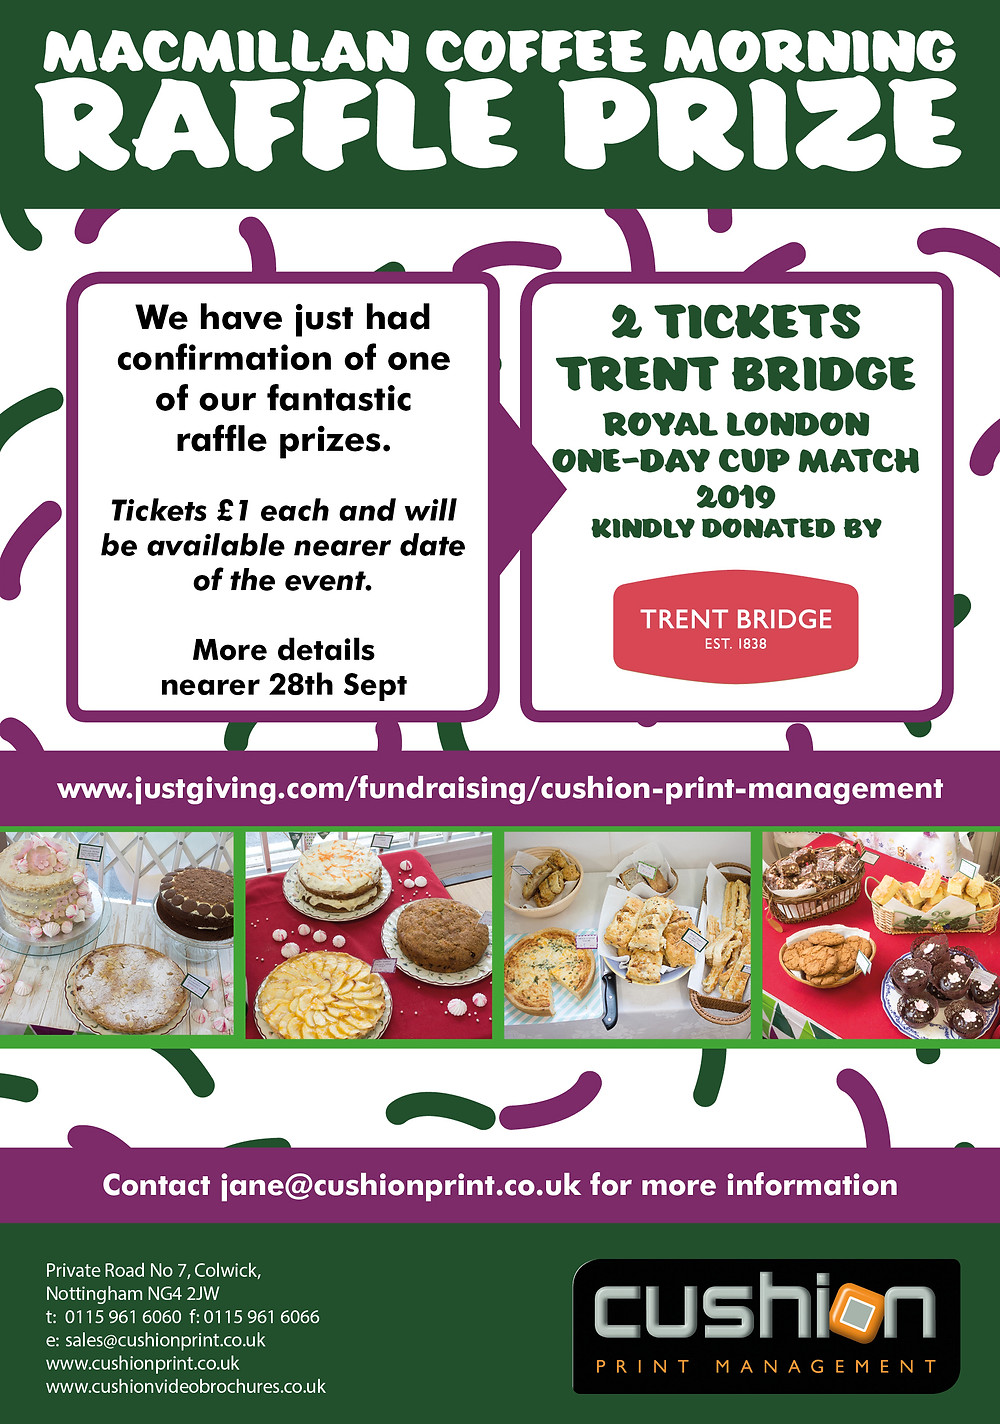 Cricket raffle tickets donated by Trent Bridge